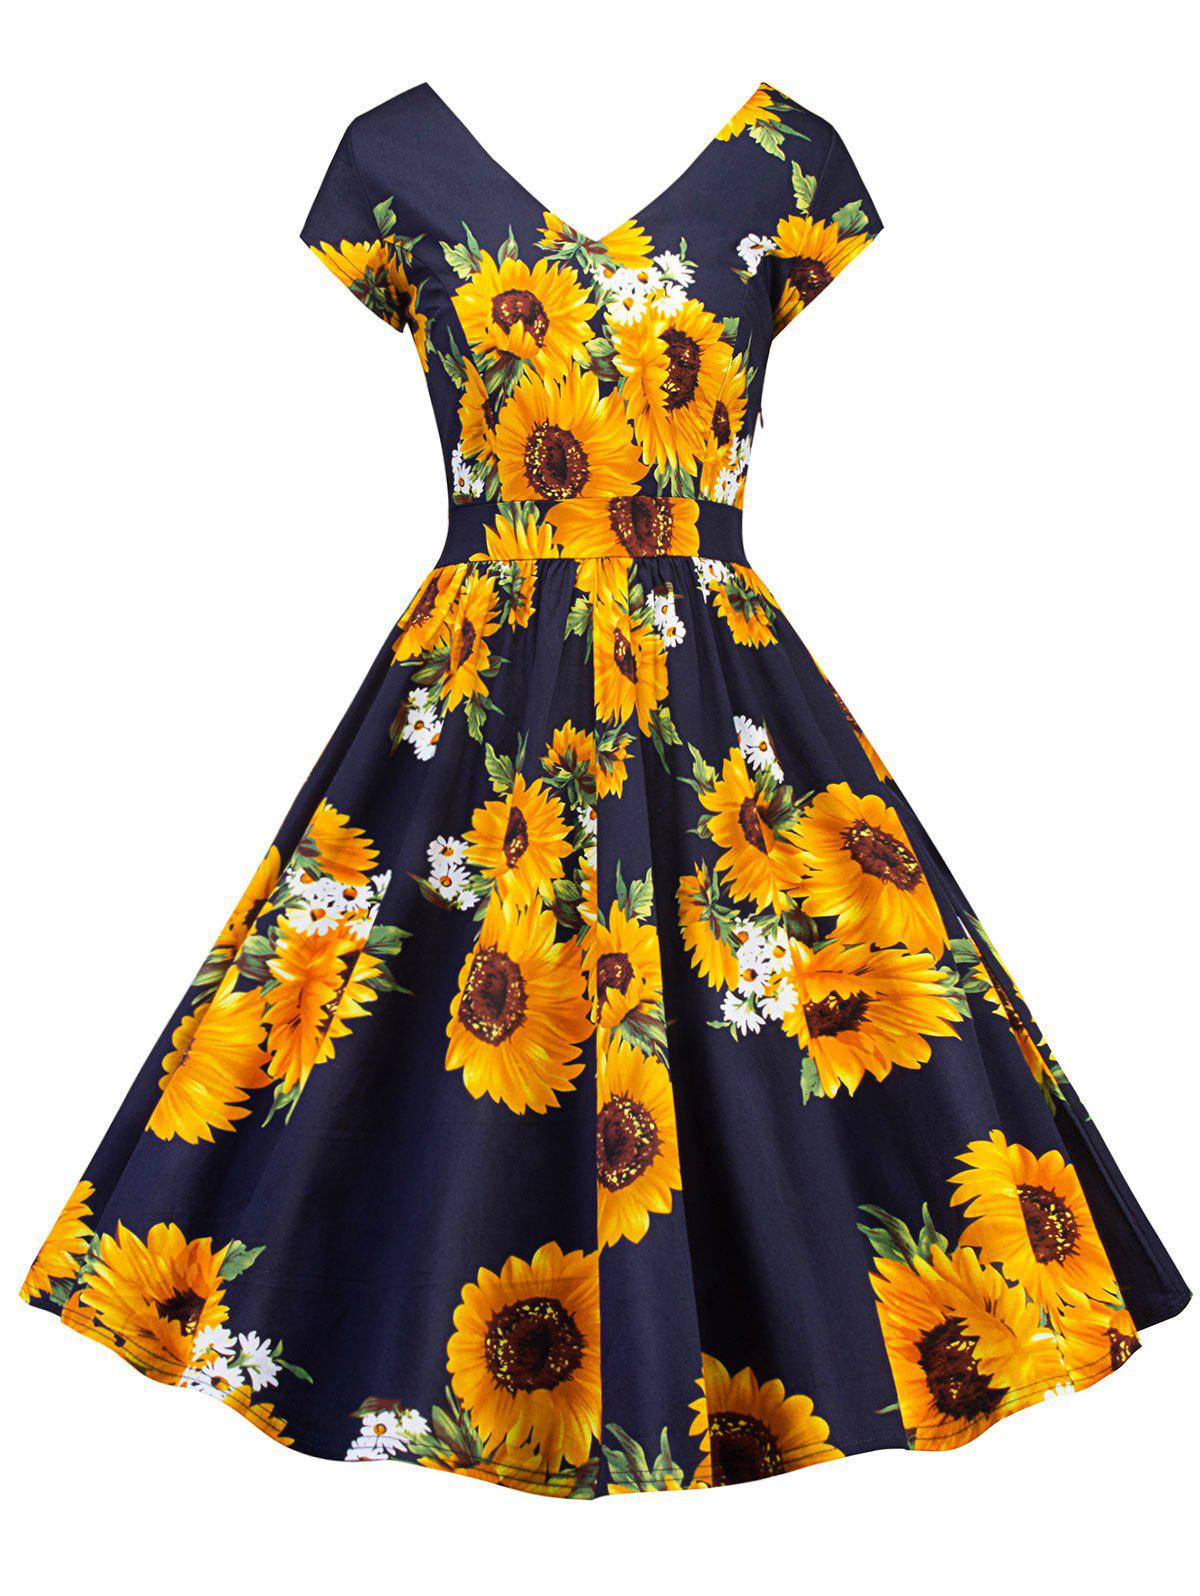 Shops Vintage Sunflower Print Skater Pin Up Dress